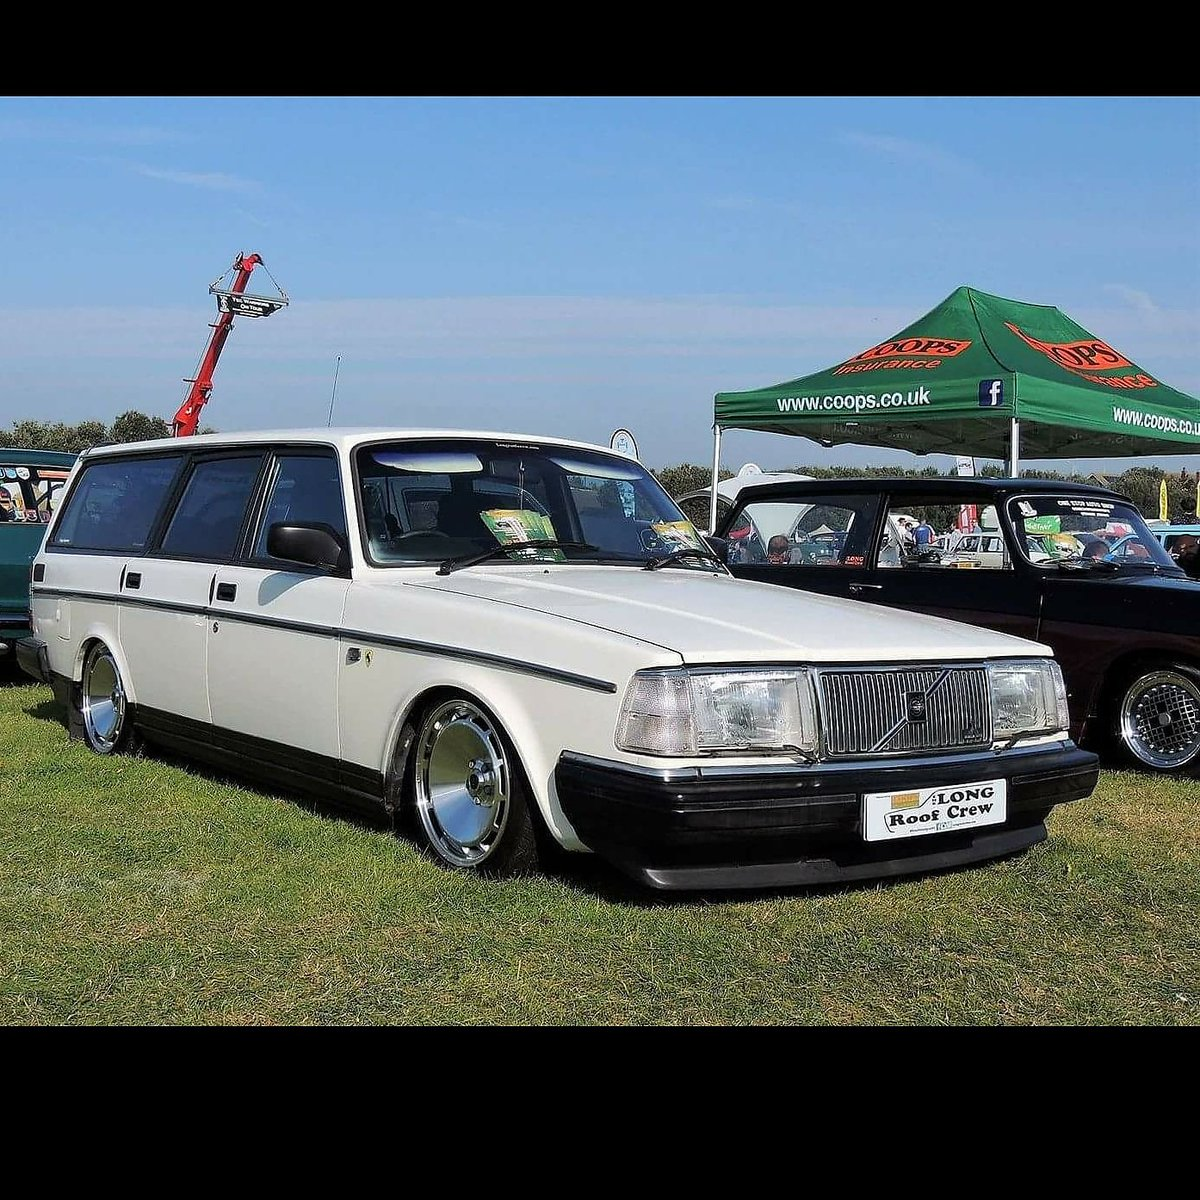 Coops Insurance On Twitter Coops Classic Car Show Is Sunday - Car show event insurance